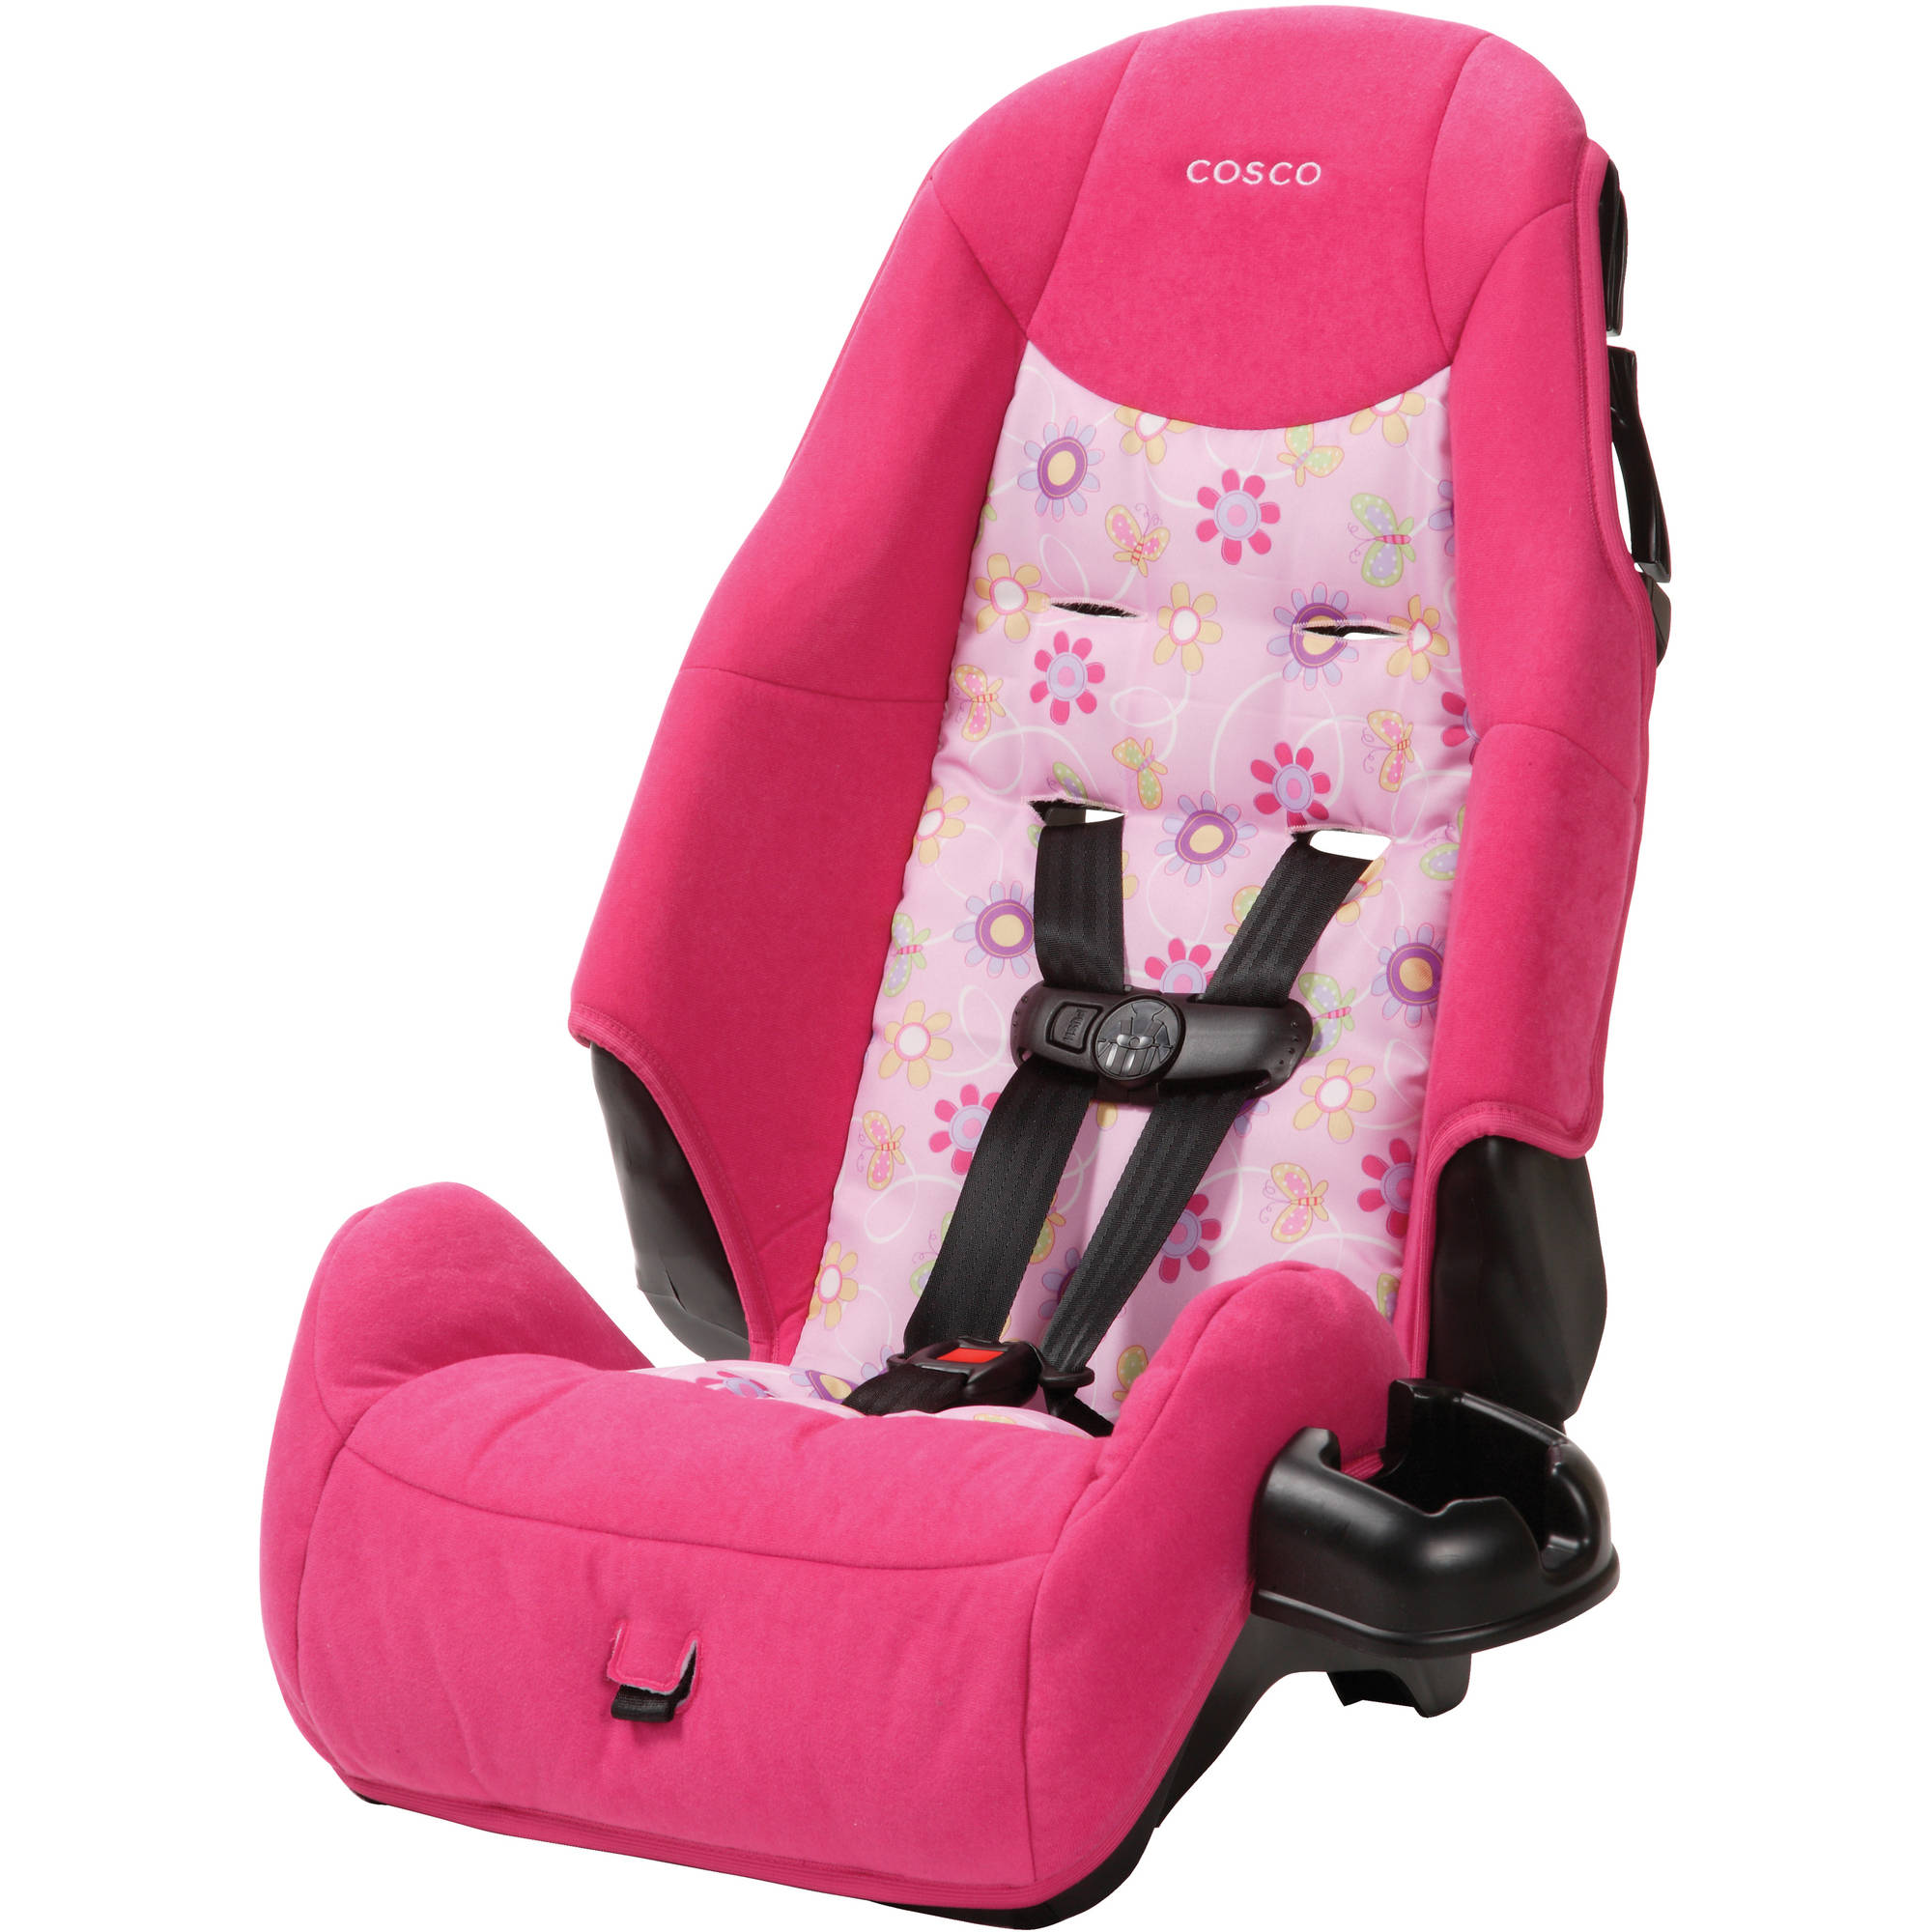 Cosco Highback Harness Booster Car Seat, Polyanna